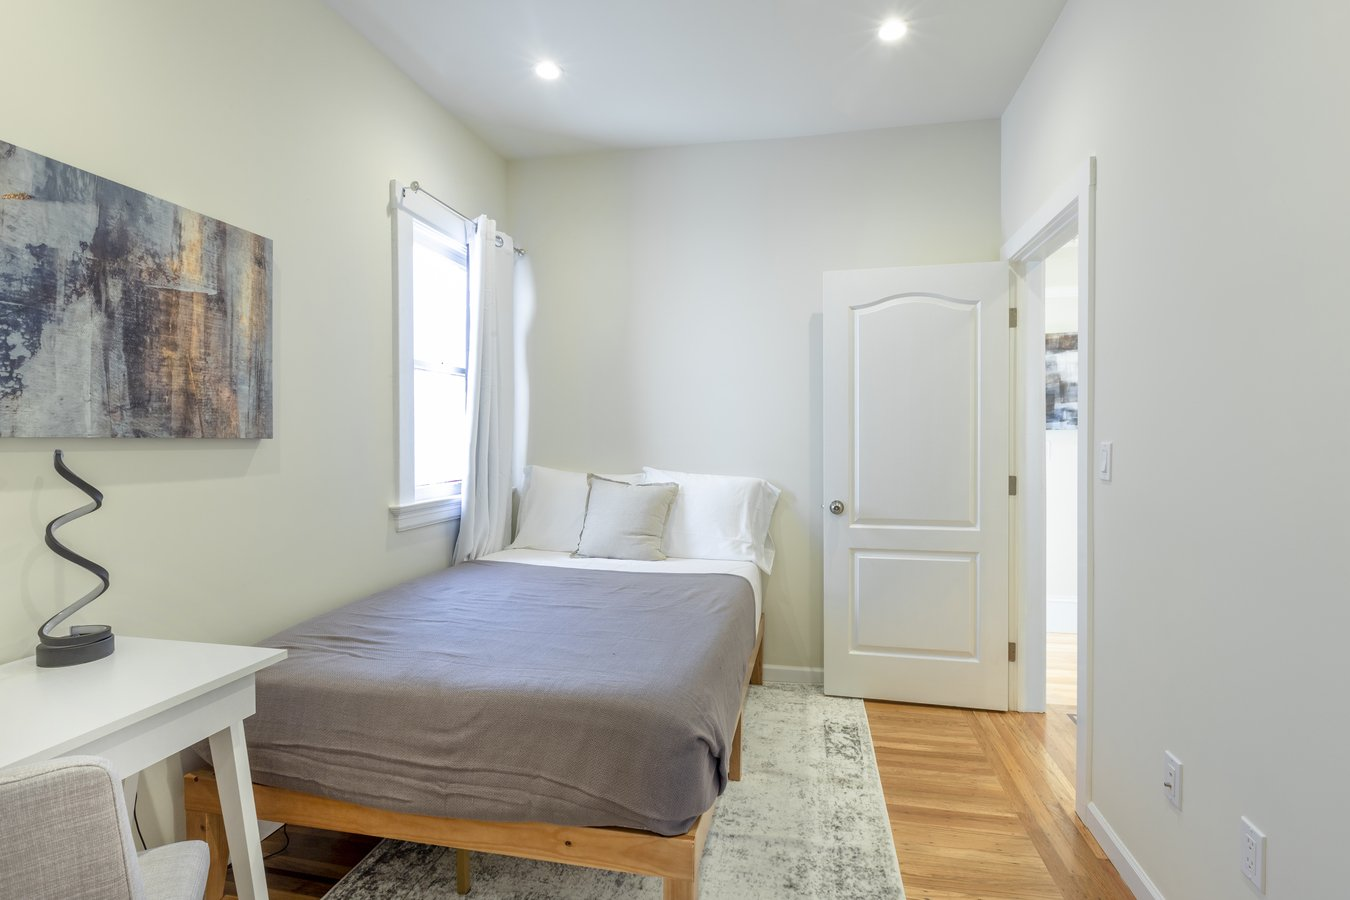 1 Bedroom 1 Bathroom House for rent at San Jose Ave & Alvarado St Coliving in San Francisco, CA